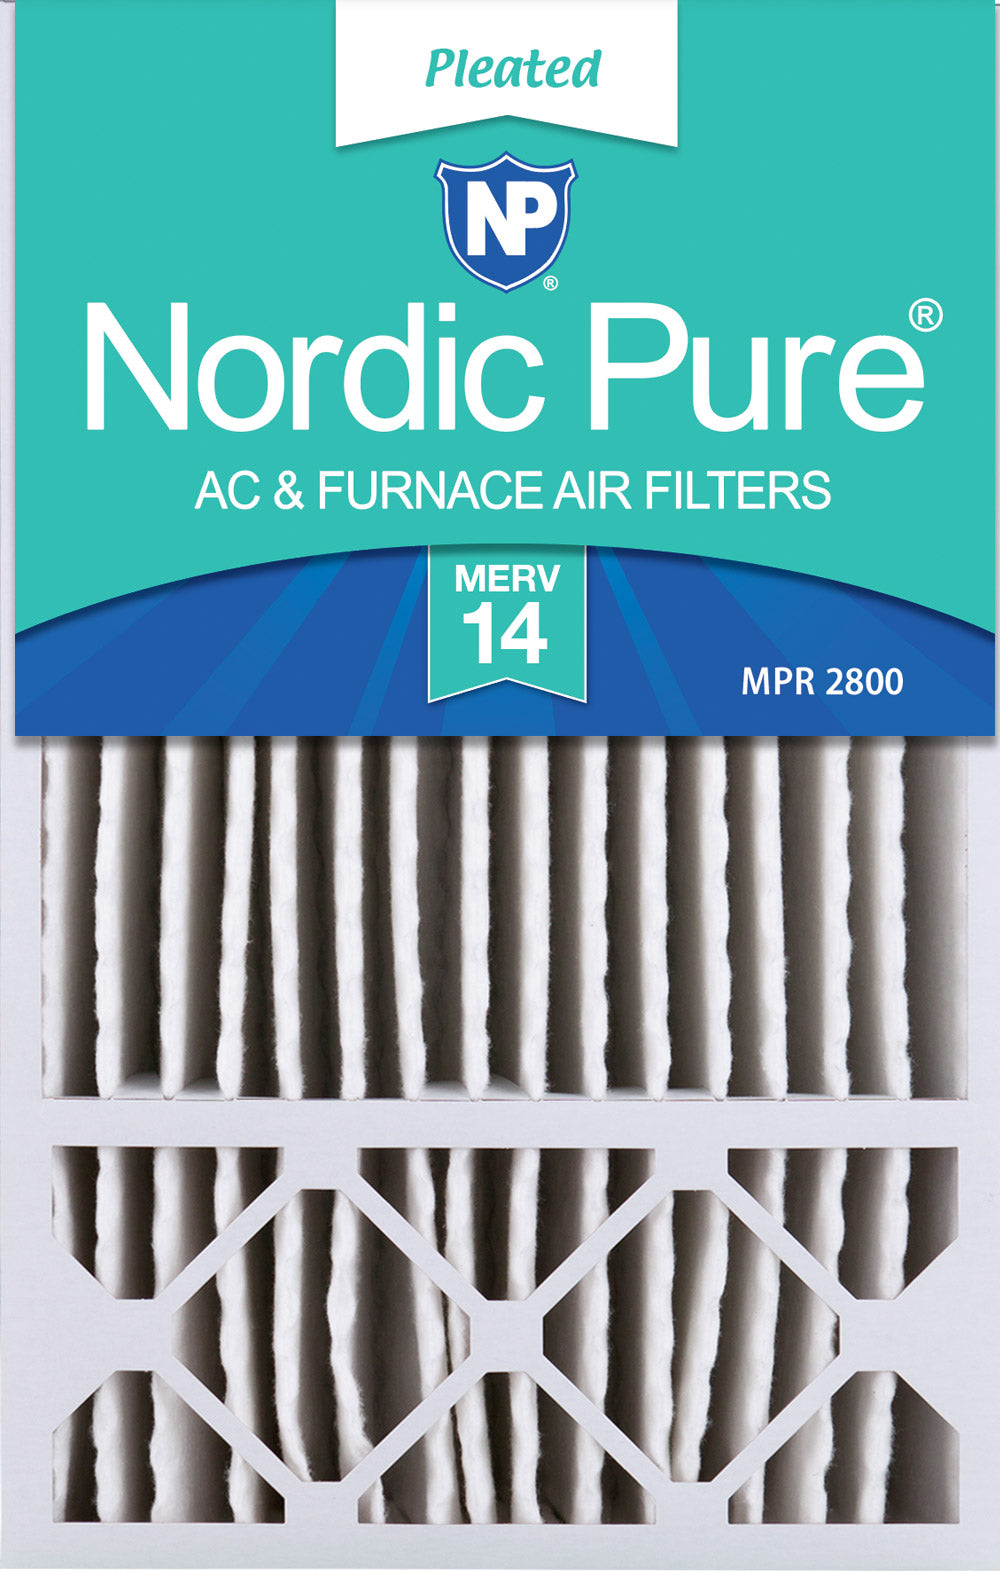 16x16x1 Furnace Filters Air Conditioner Filter Replacement Clean Vent-3 Pack